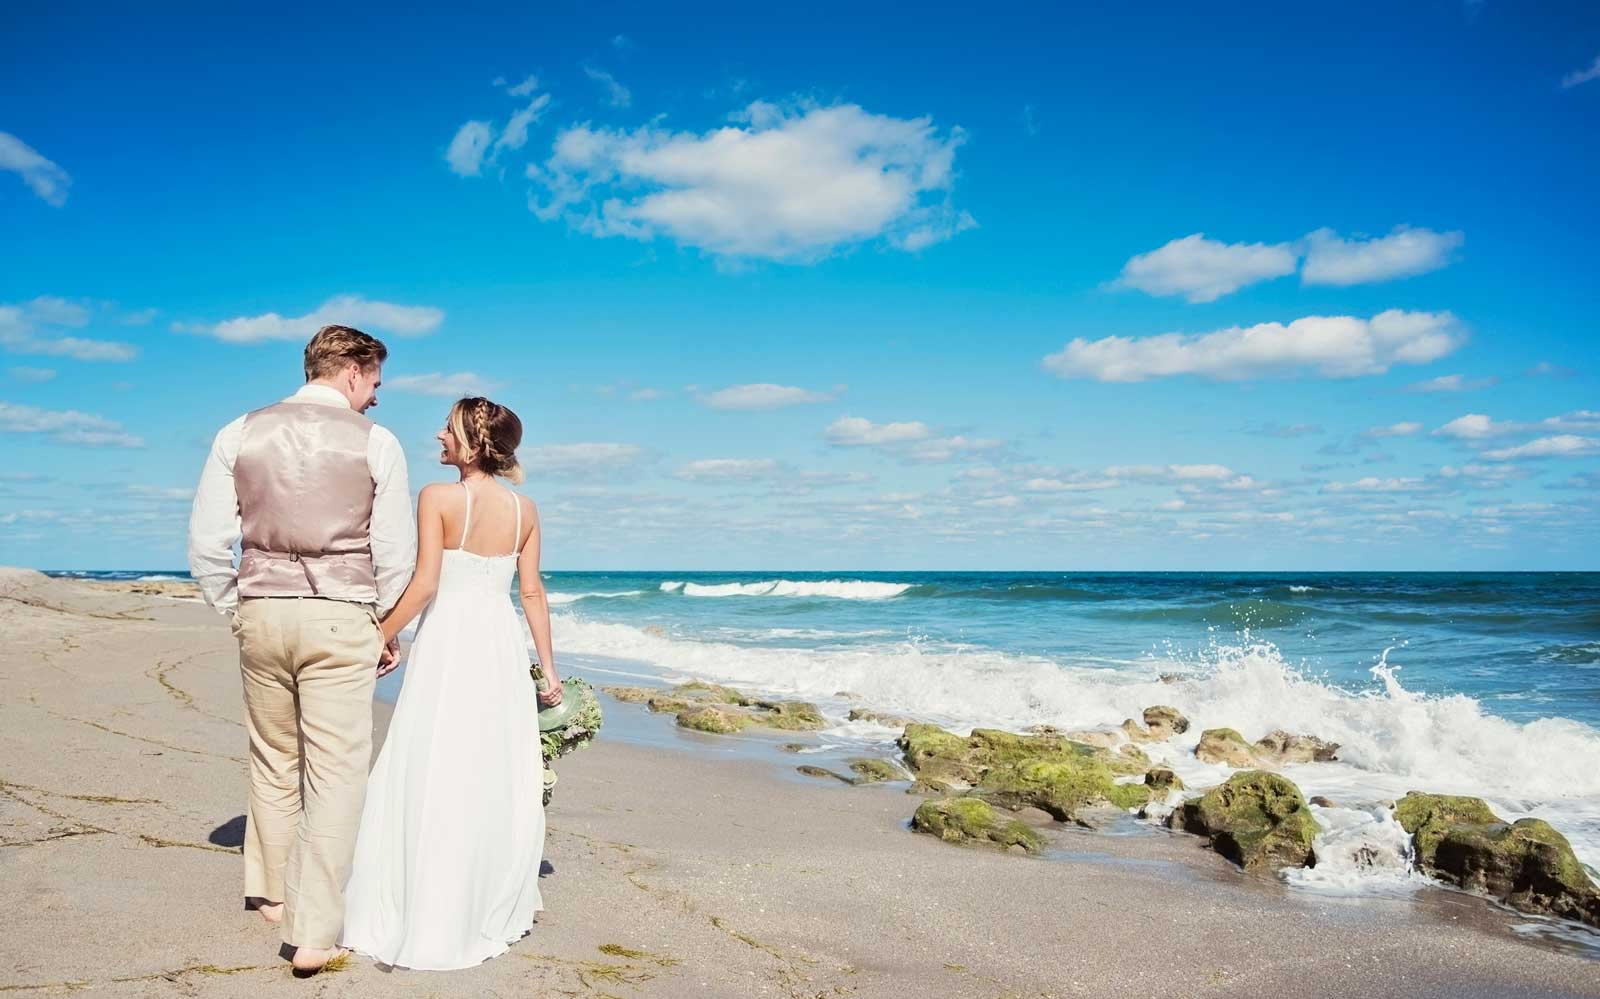 Bride and Groom on the beach in Florida